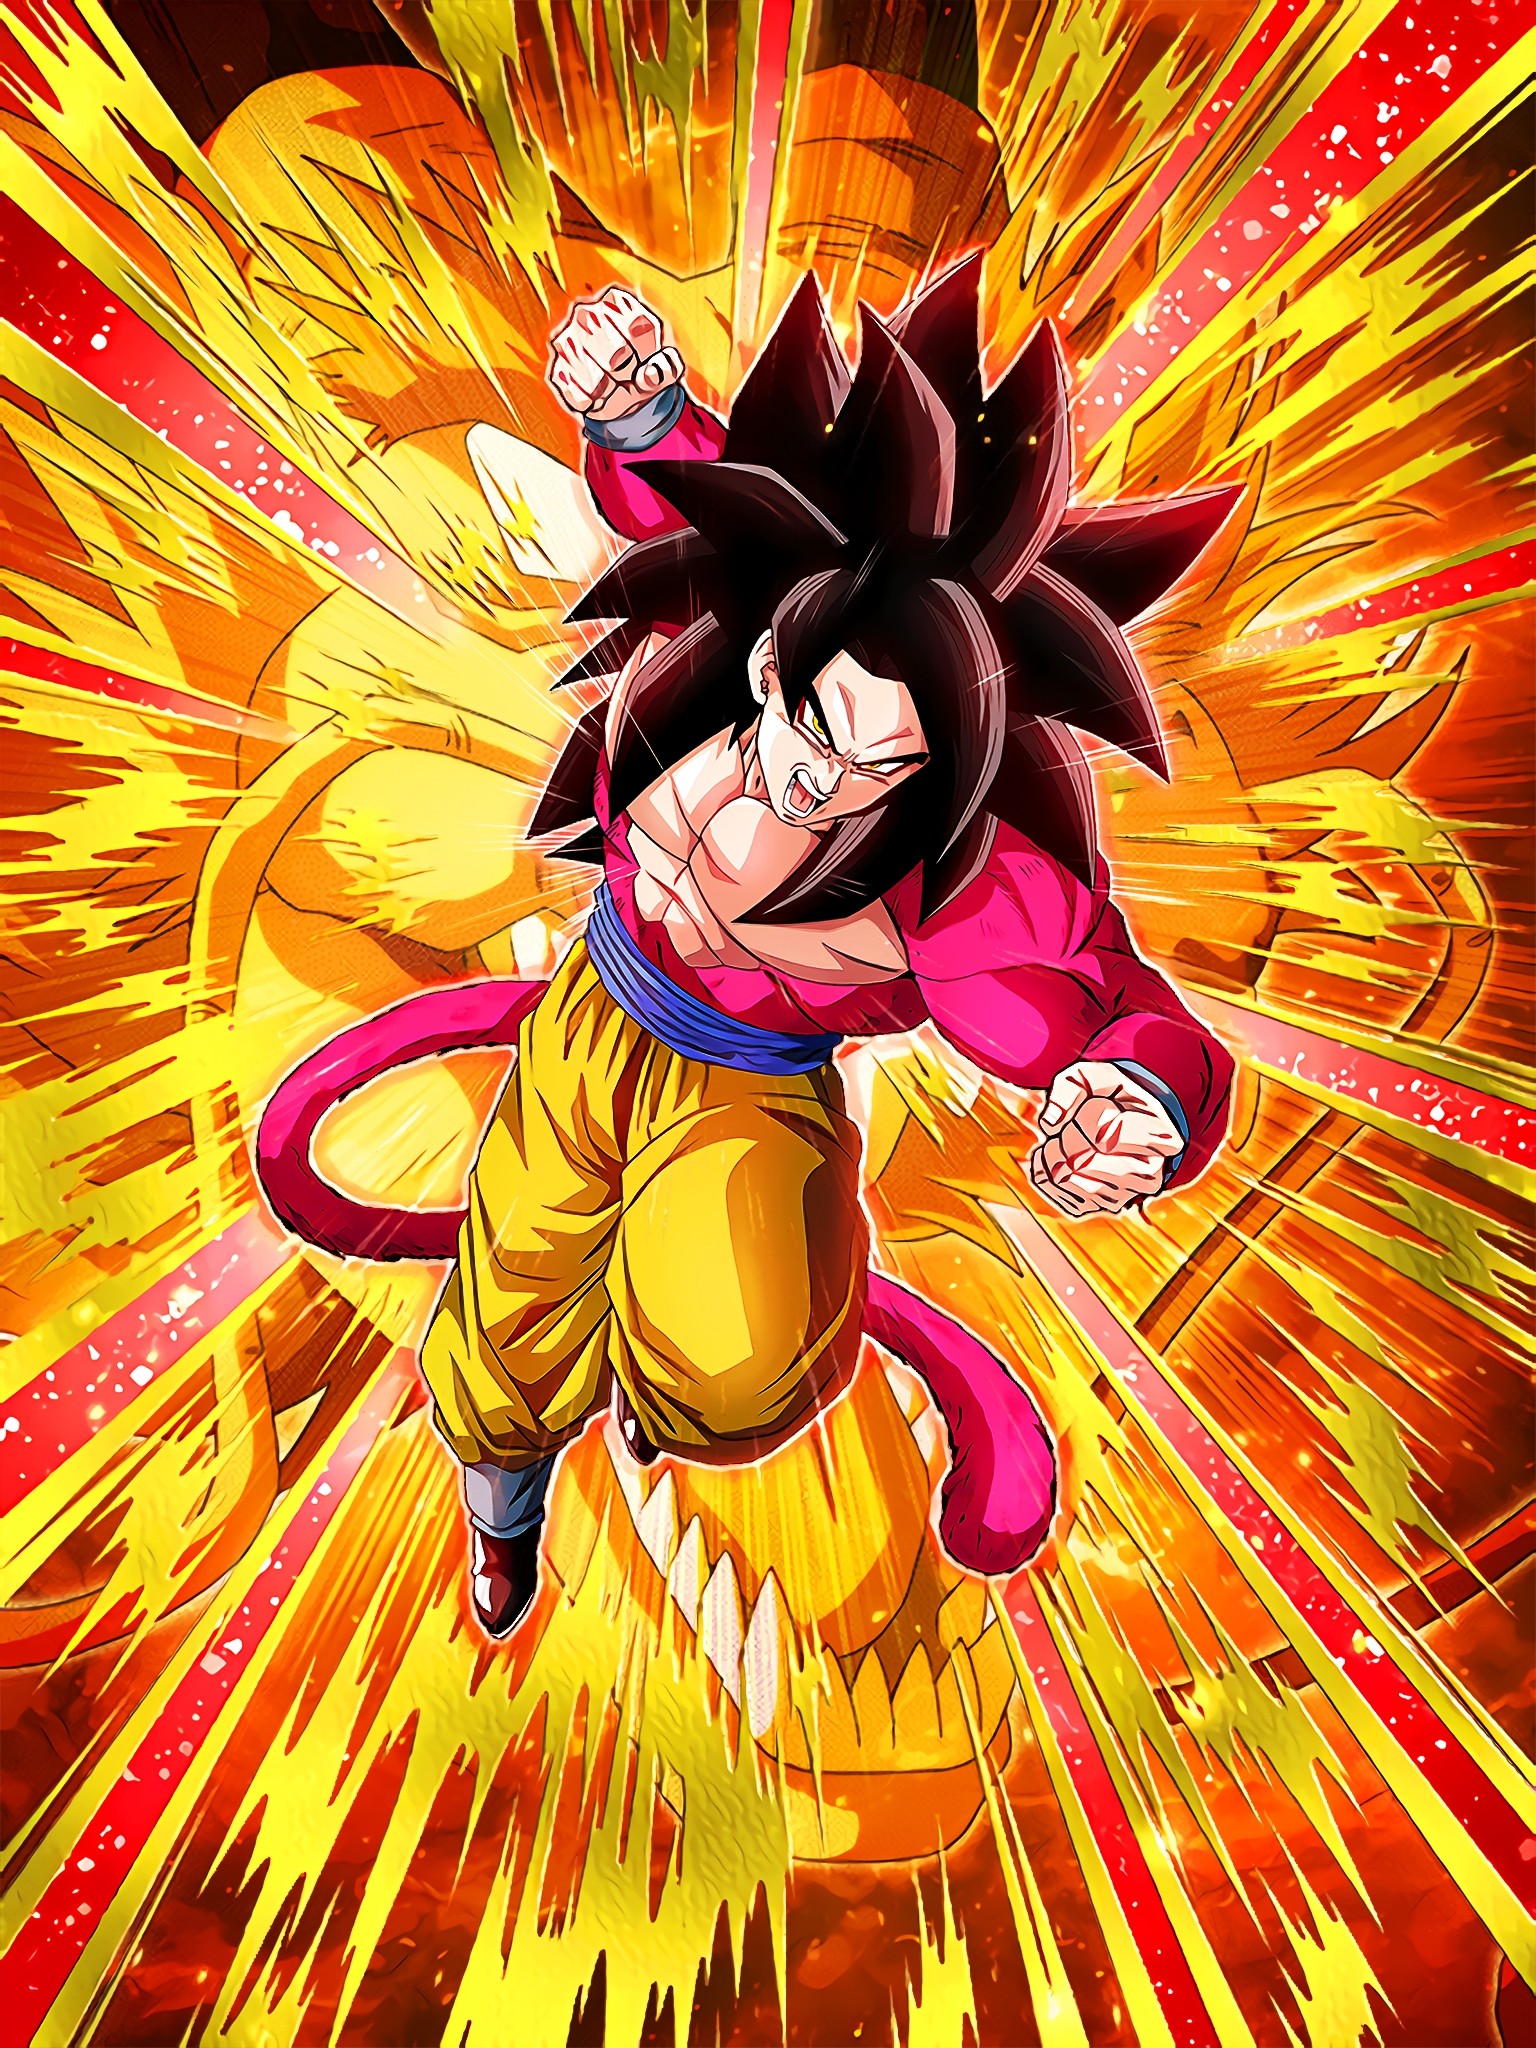 Shouldering the Hopes Full Power Super Saiyan 4 Goku Art (Dragon Ball Z Dokkan Battle) .jpg